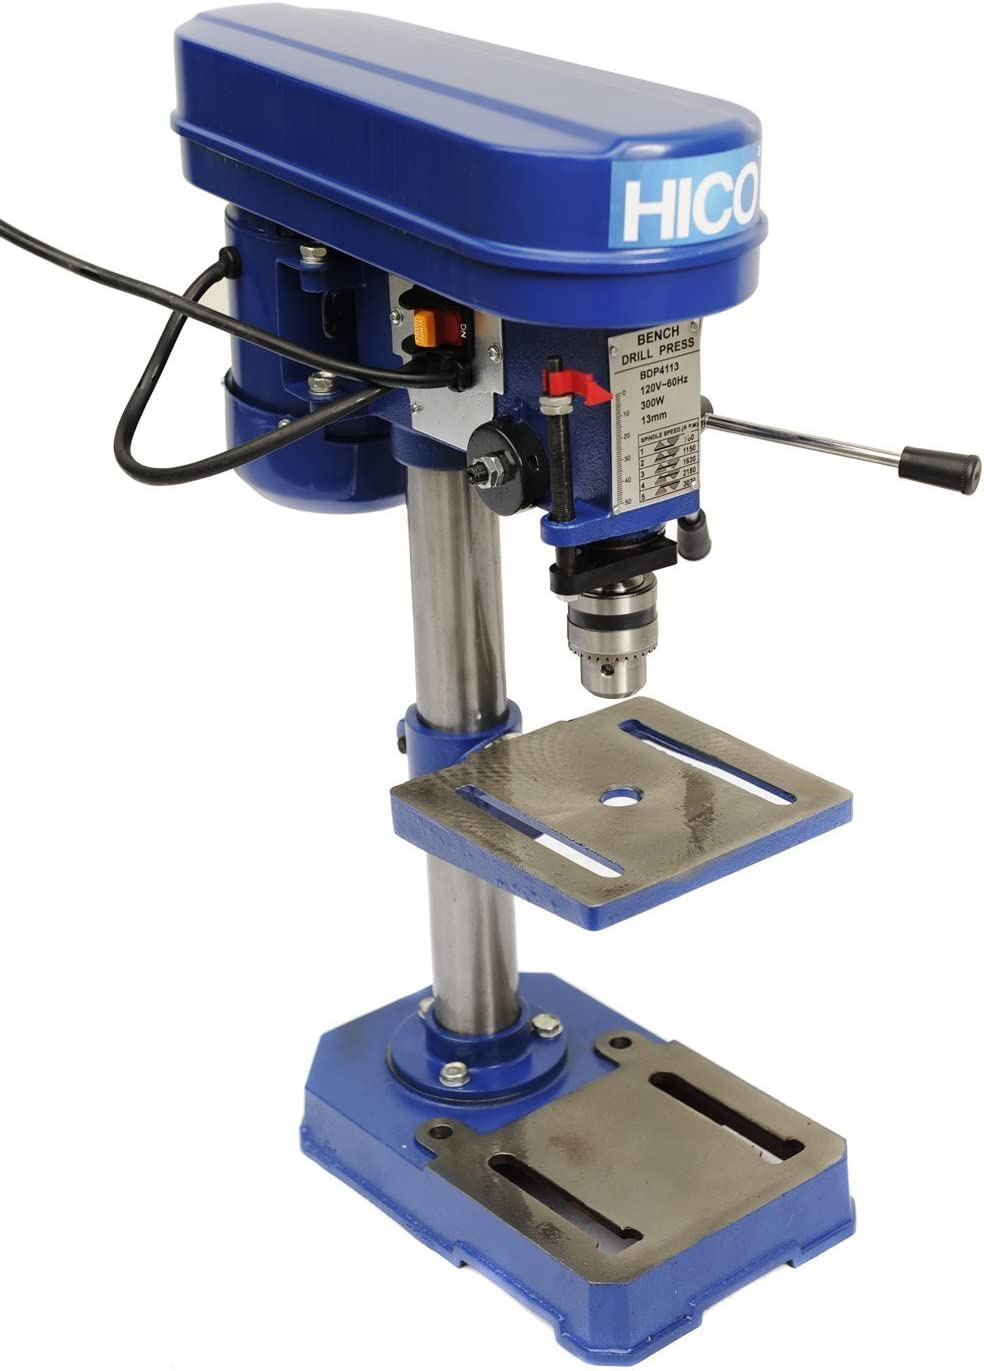 Top 5 best drill press for woodworking- best floor drill press (2020 Buying Guide) 2